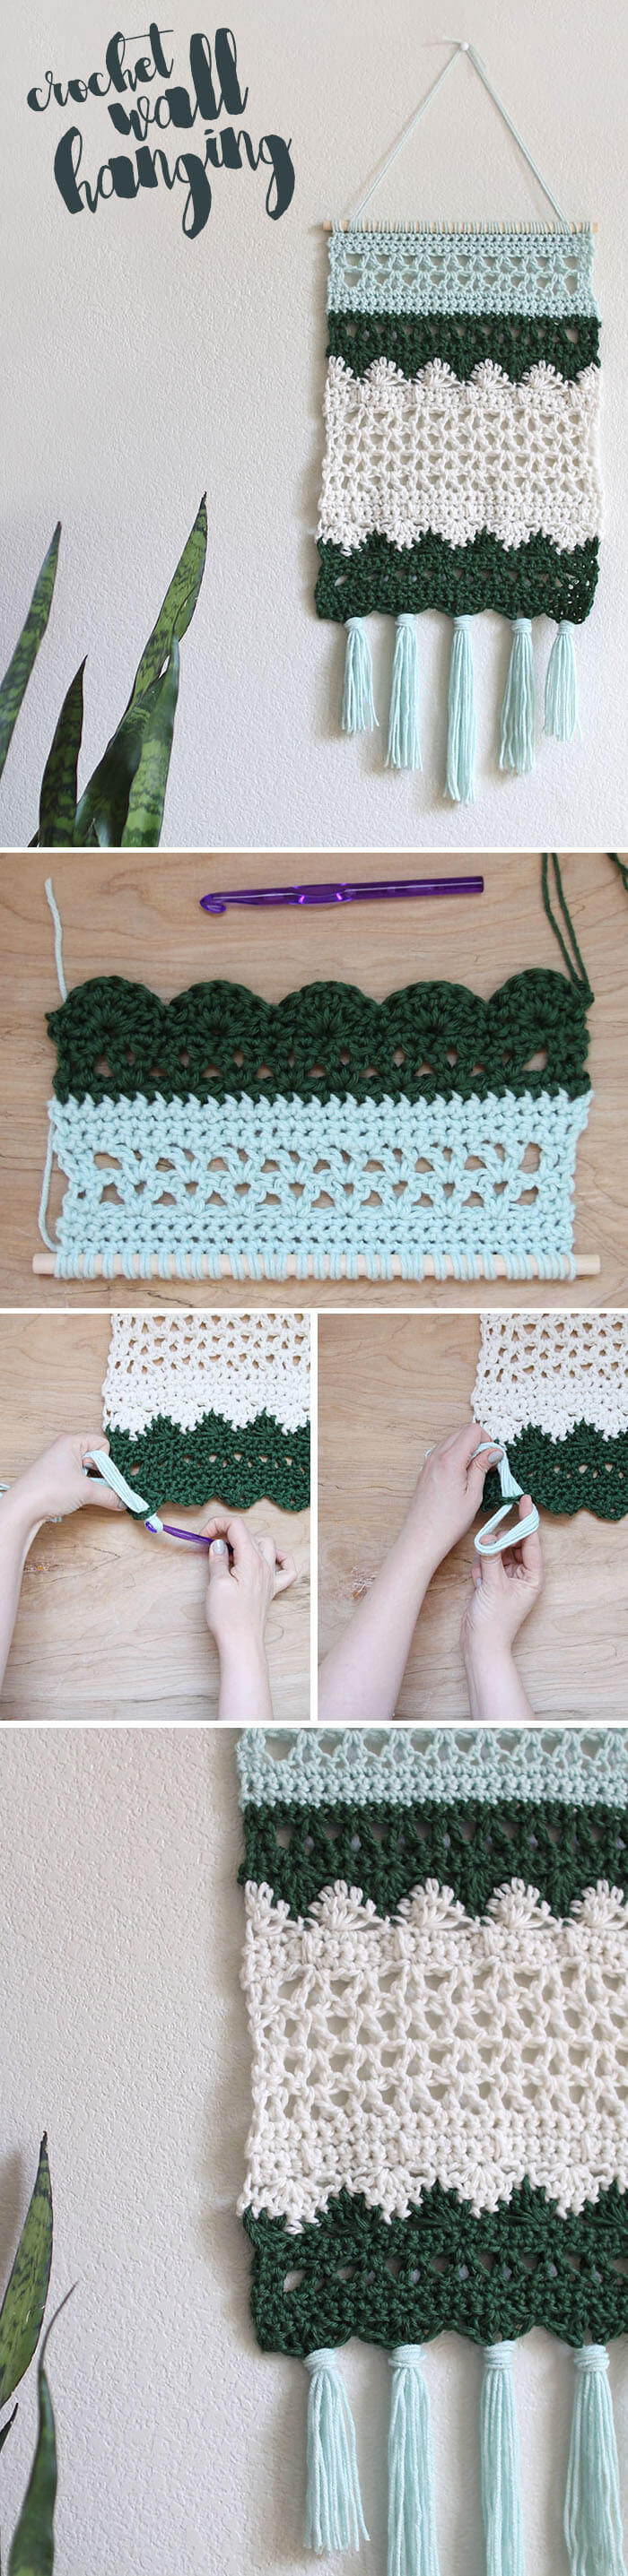 Crochet wall hanging pattern persia lou Crochet home decor pinterest